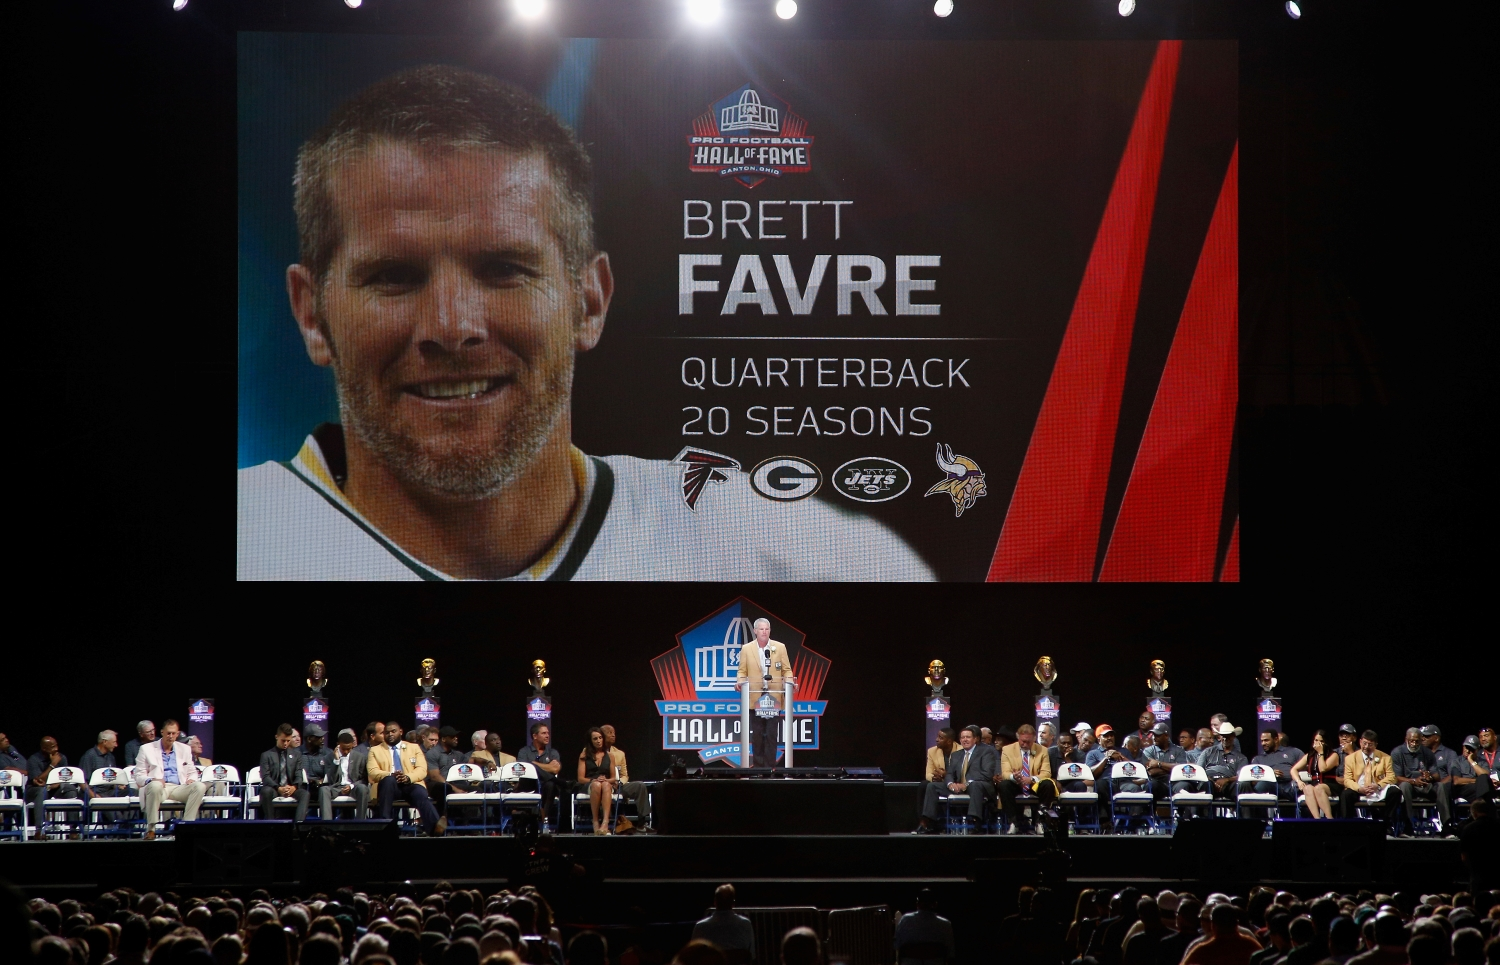 Brett Favre's Honest Discussion About Addiction With Dr. Phil Included an Eye-Opening Story About a Life-or-Death Decision